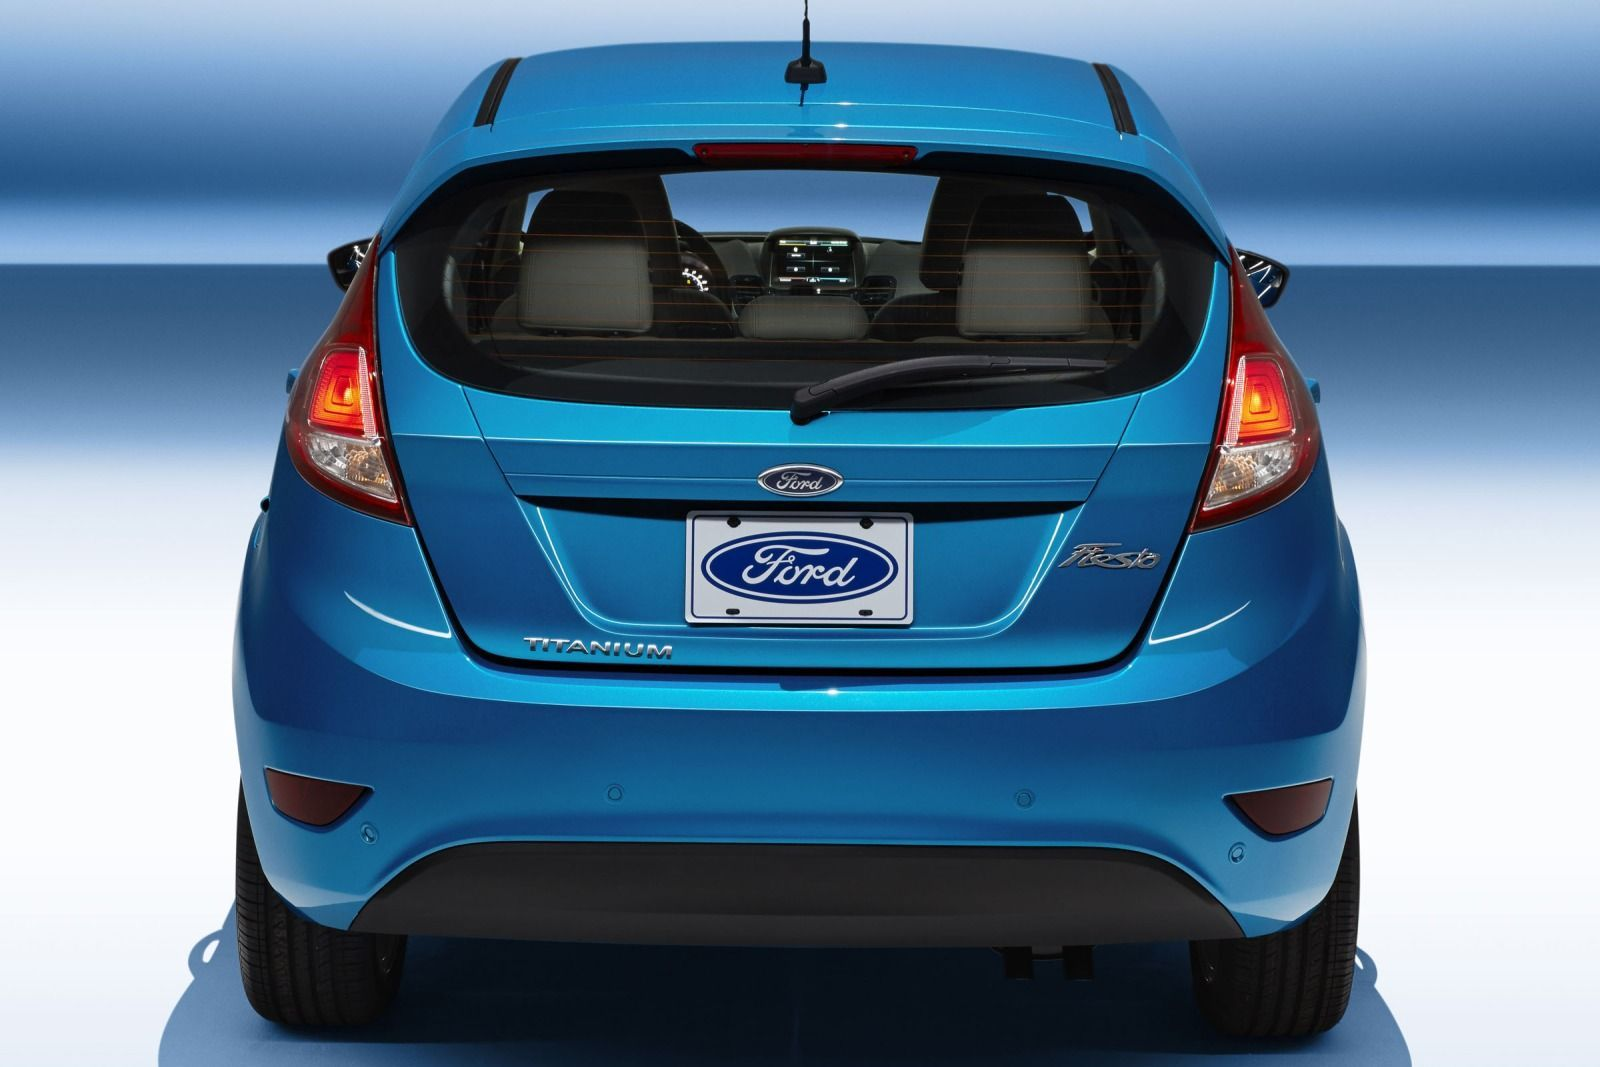 2015 Ford Fiesta Review Wallpapers Sports Cars 2015 All Sports Cars Ford Fiesta Sports Cars